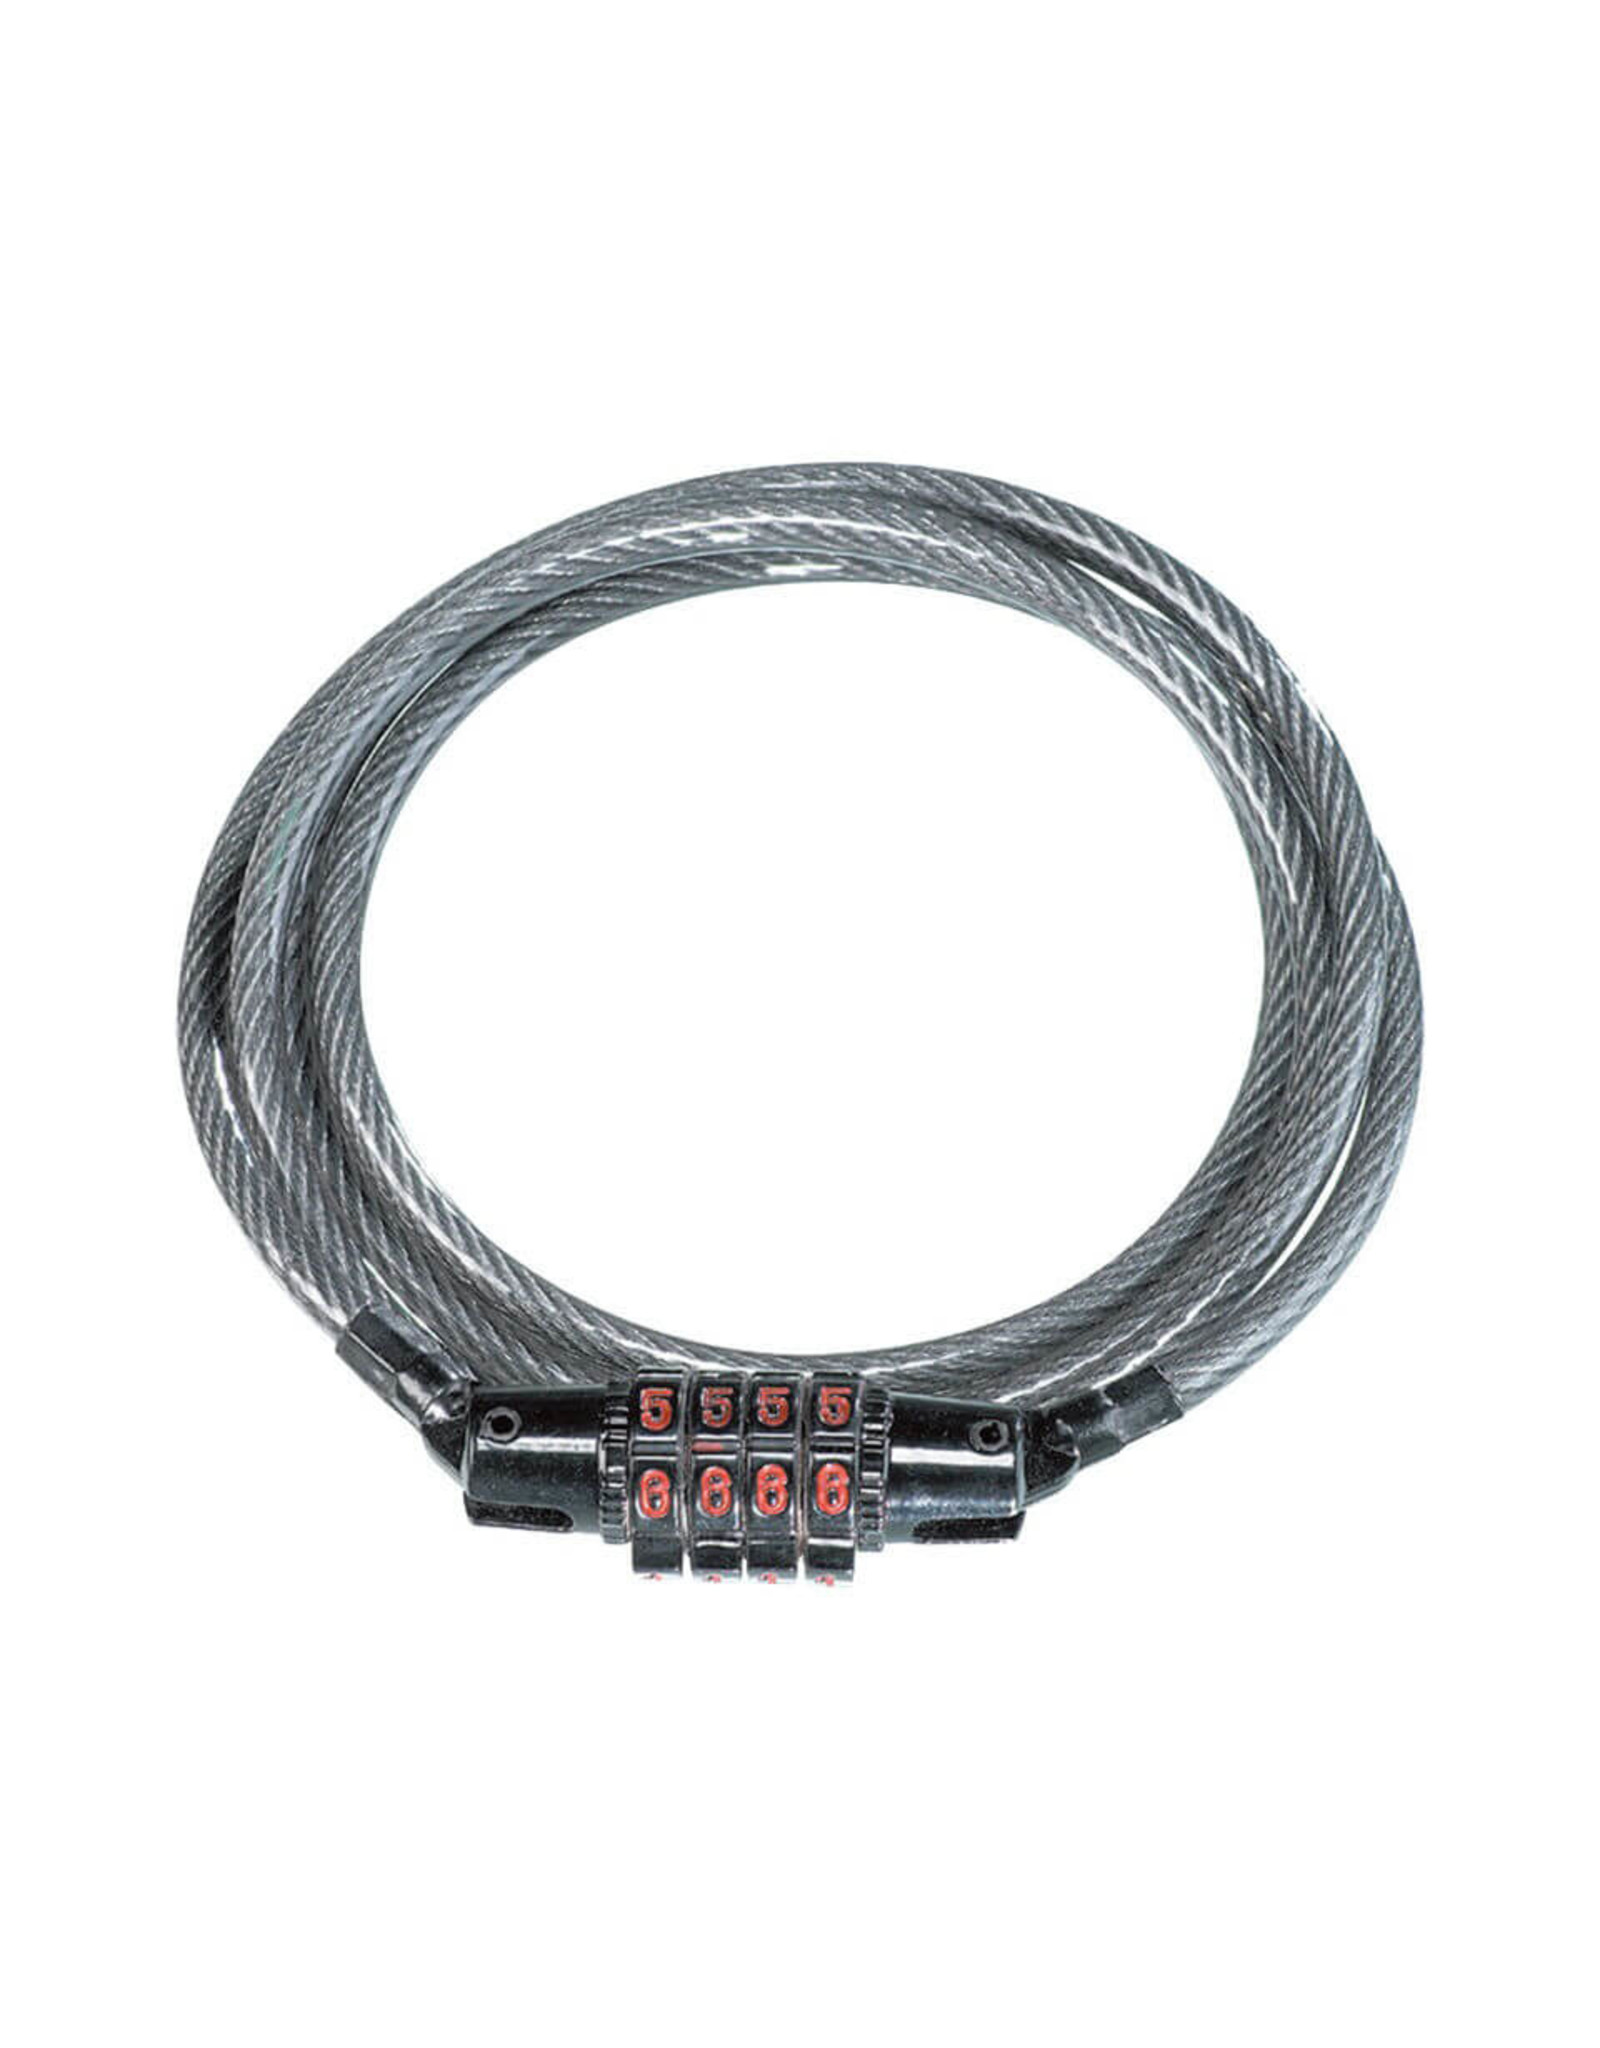 KEEPER 512 COMBO CABLE LOCK